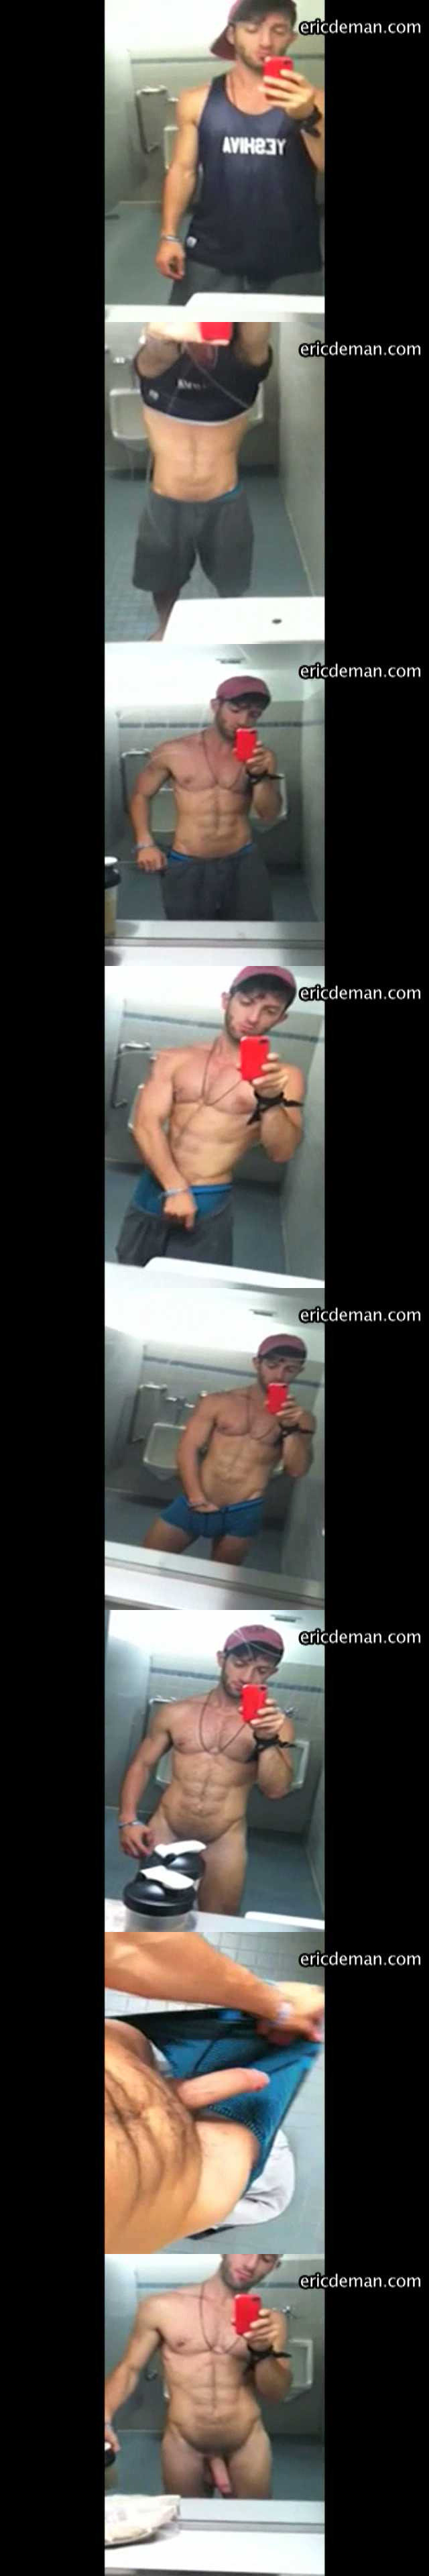 muscle gym dude posing naked in the mirror